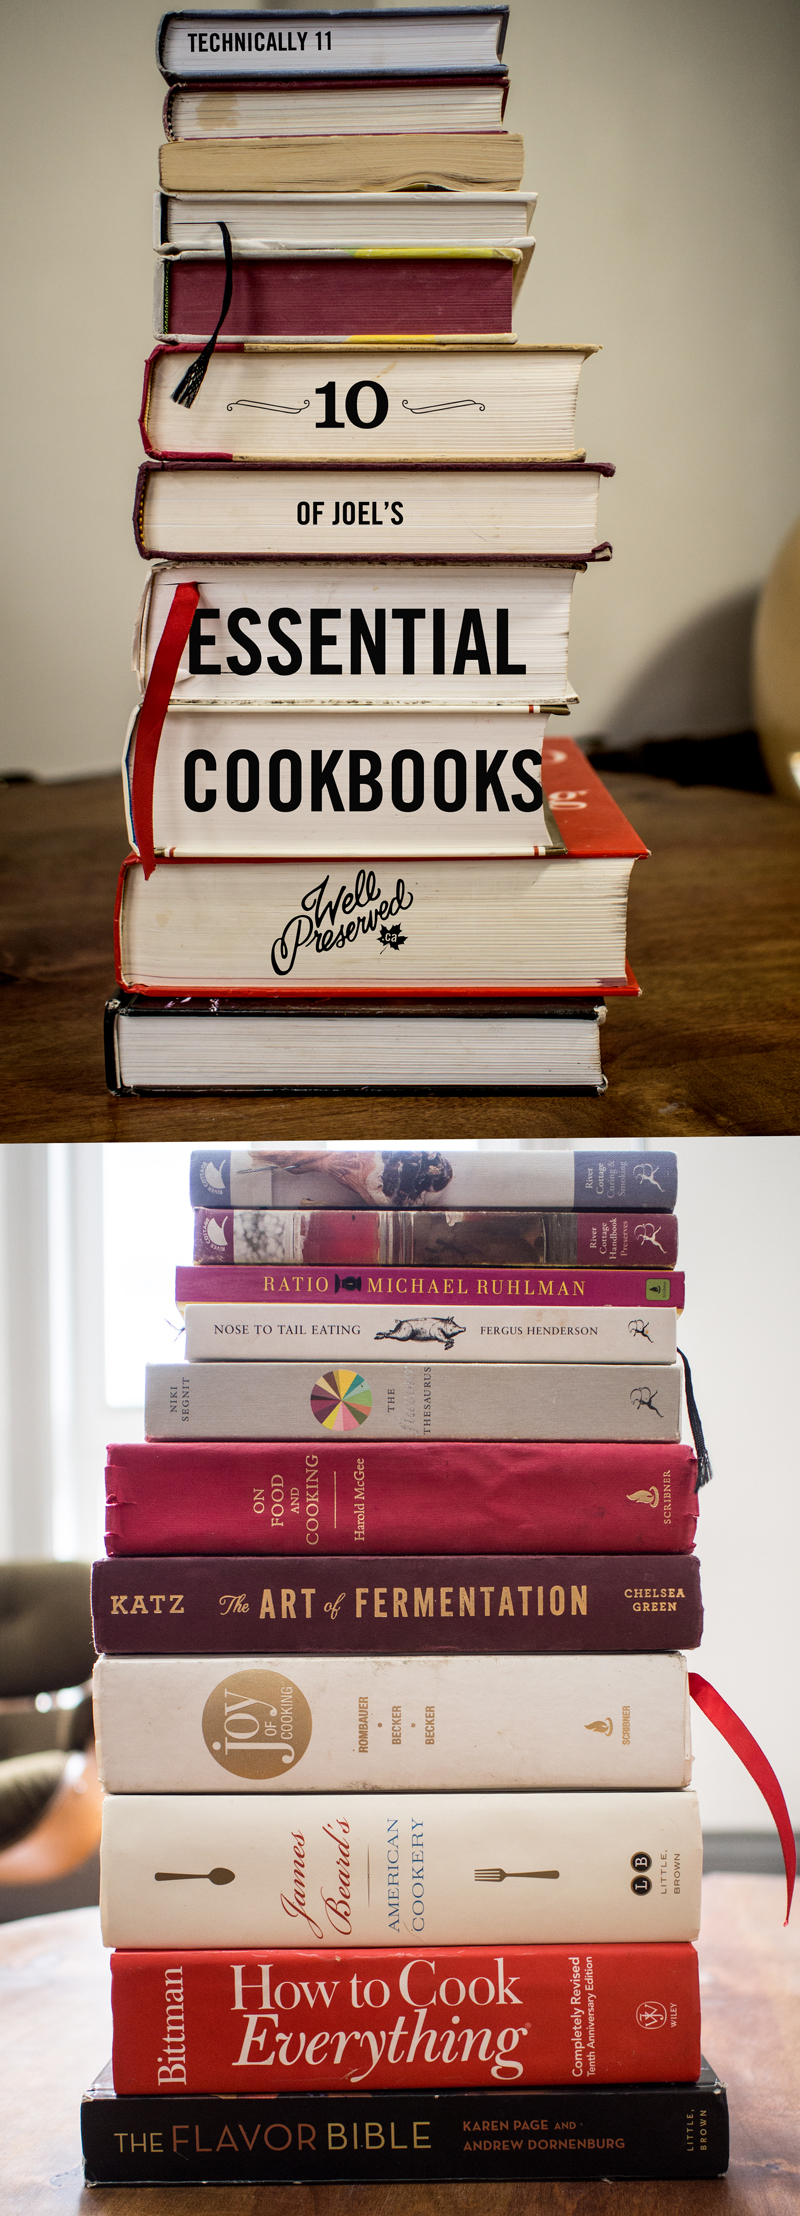 10 Essential Cookbooks